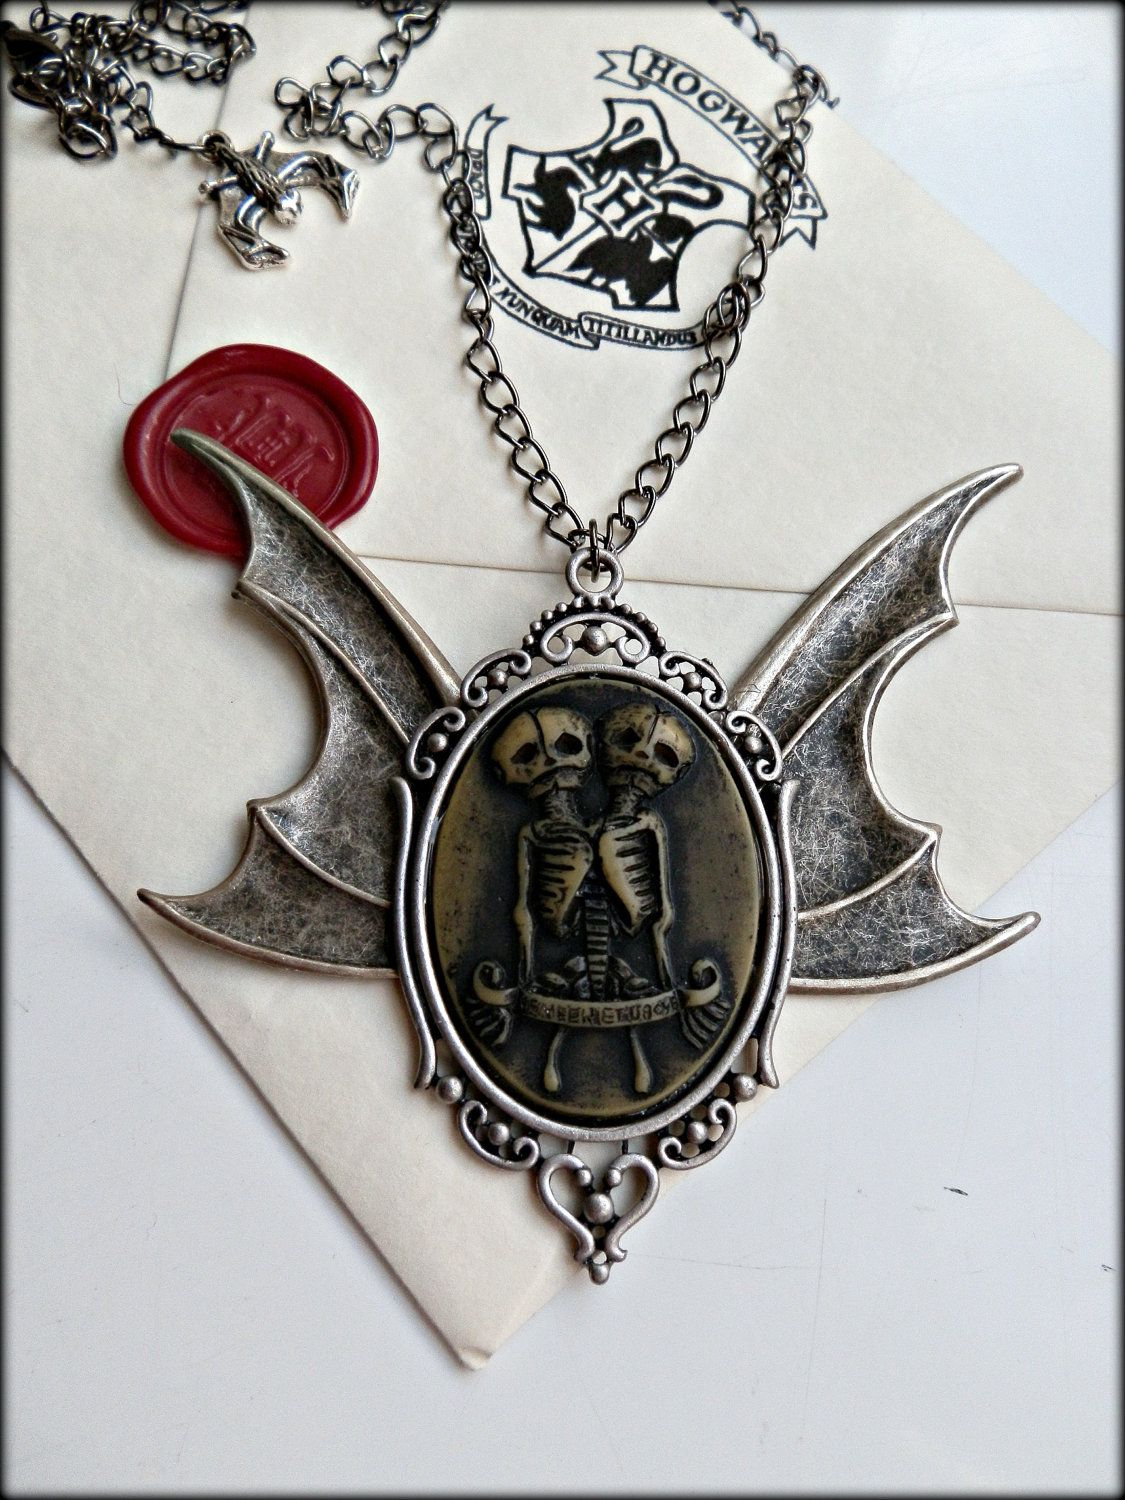 Conjoined skeleton bat wing cameo necklace.